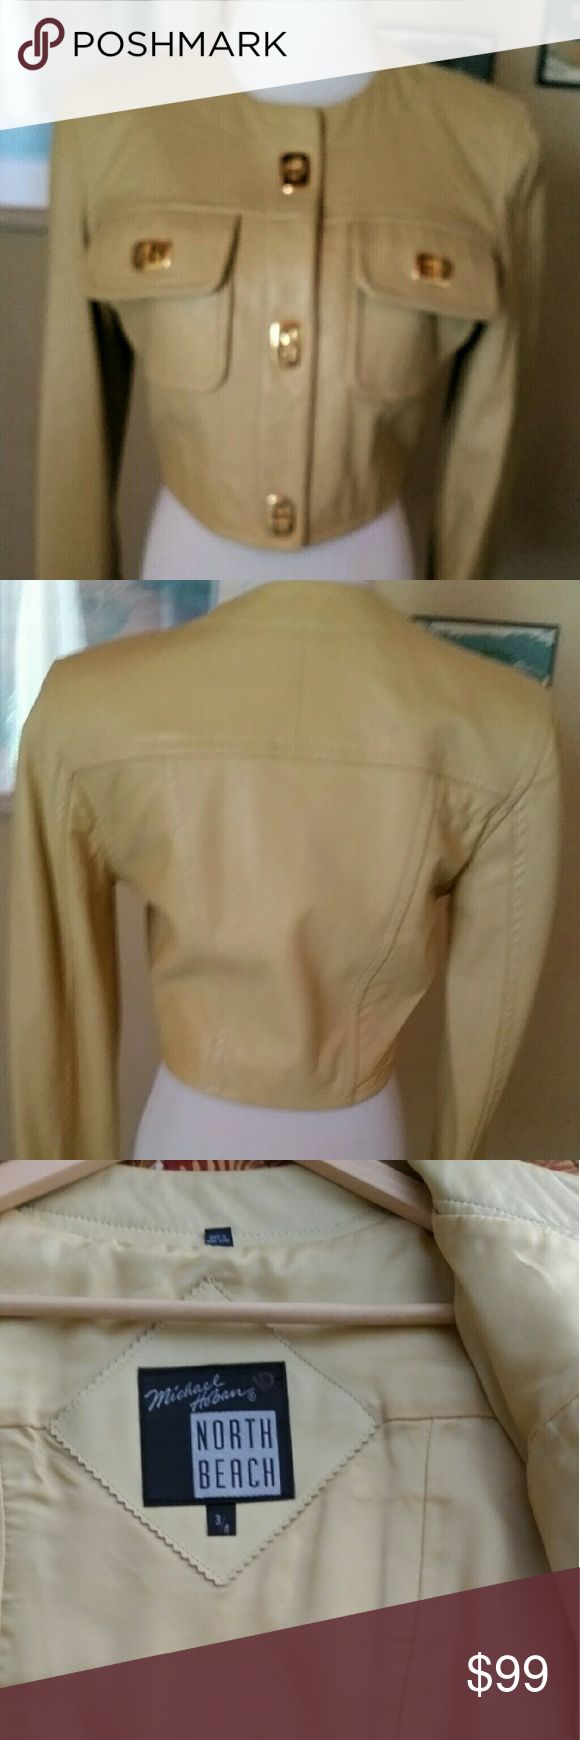 NORTH BEACH Leather Biker Jacket Ladies 3/4 Vintage Ladies 100% Leather Jacket by North Beach - Michael Hoban. This jacket is a very soft, lightweight jacket. It is fully lined in Rayon. The color is Butter Cream. It has a 3 gold metal toggles down the front, 2 toggles on the breast pockets and 2 toggles on each sleeve. It is a size 3/4. It is in perfect condition with the exception of tiny cuts on the back of the left sleeve which I had professionally repaired (See picture 4). The price has…